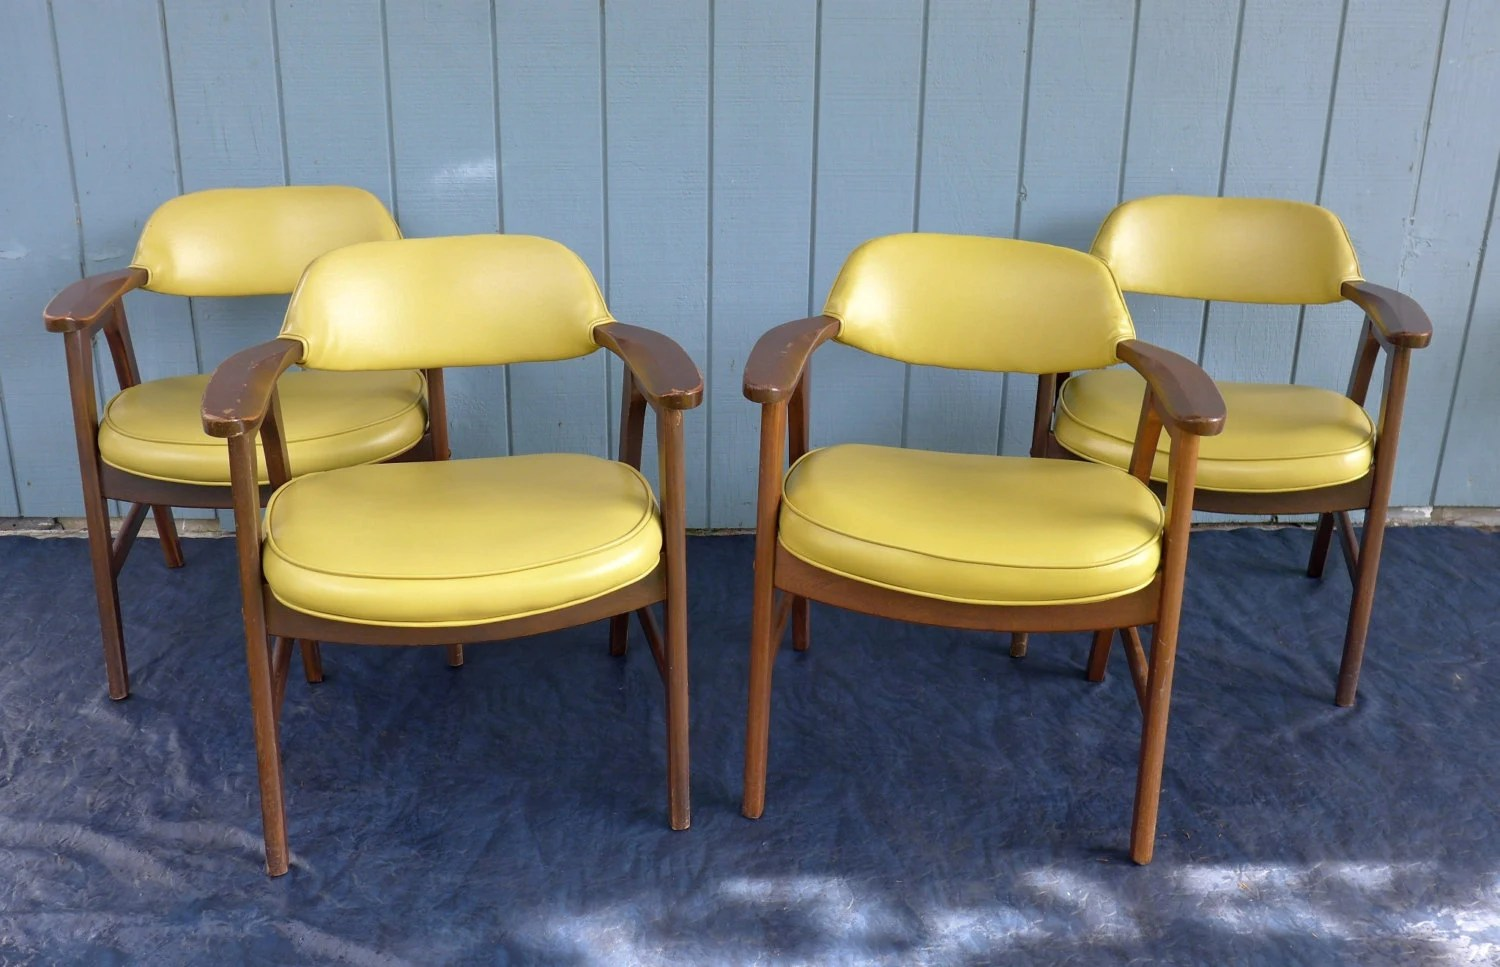 swivel chair mustard yellow ergonomic with lumbar support reserved for audrey 4 arm chairs murphy miller